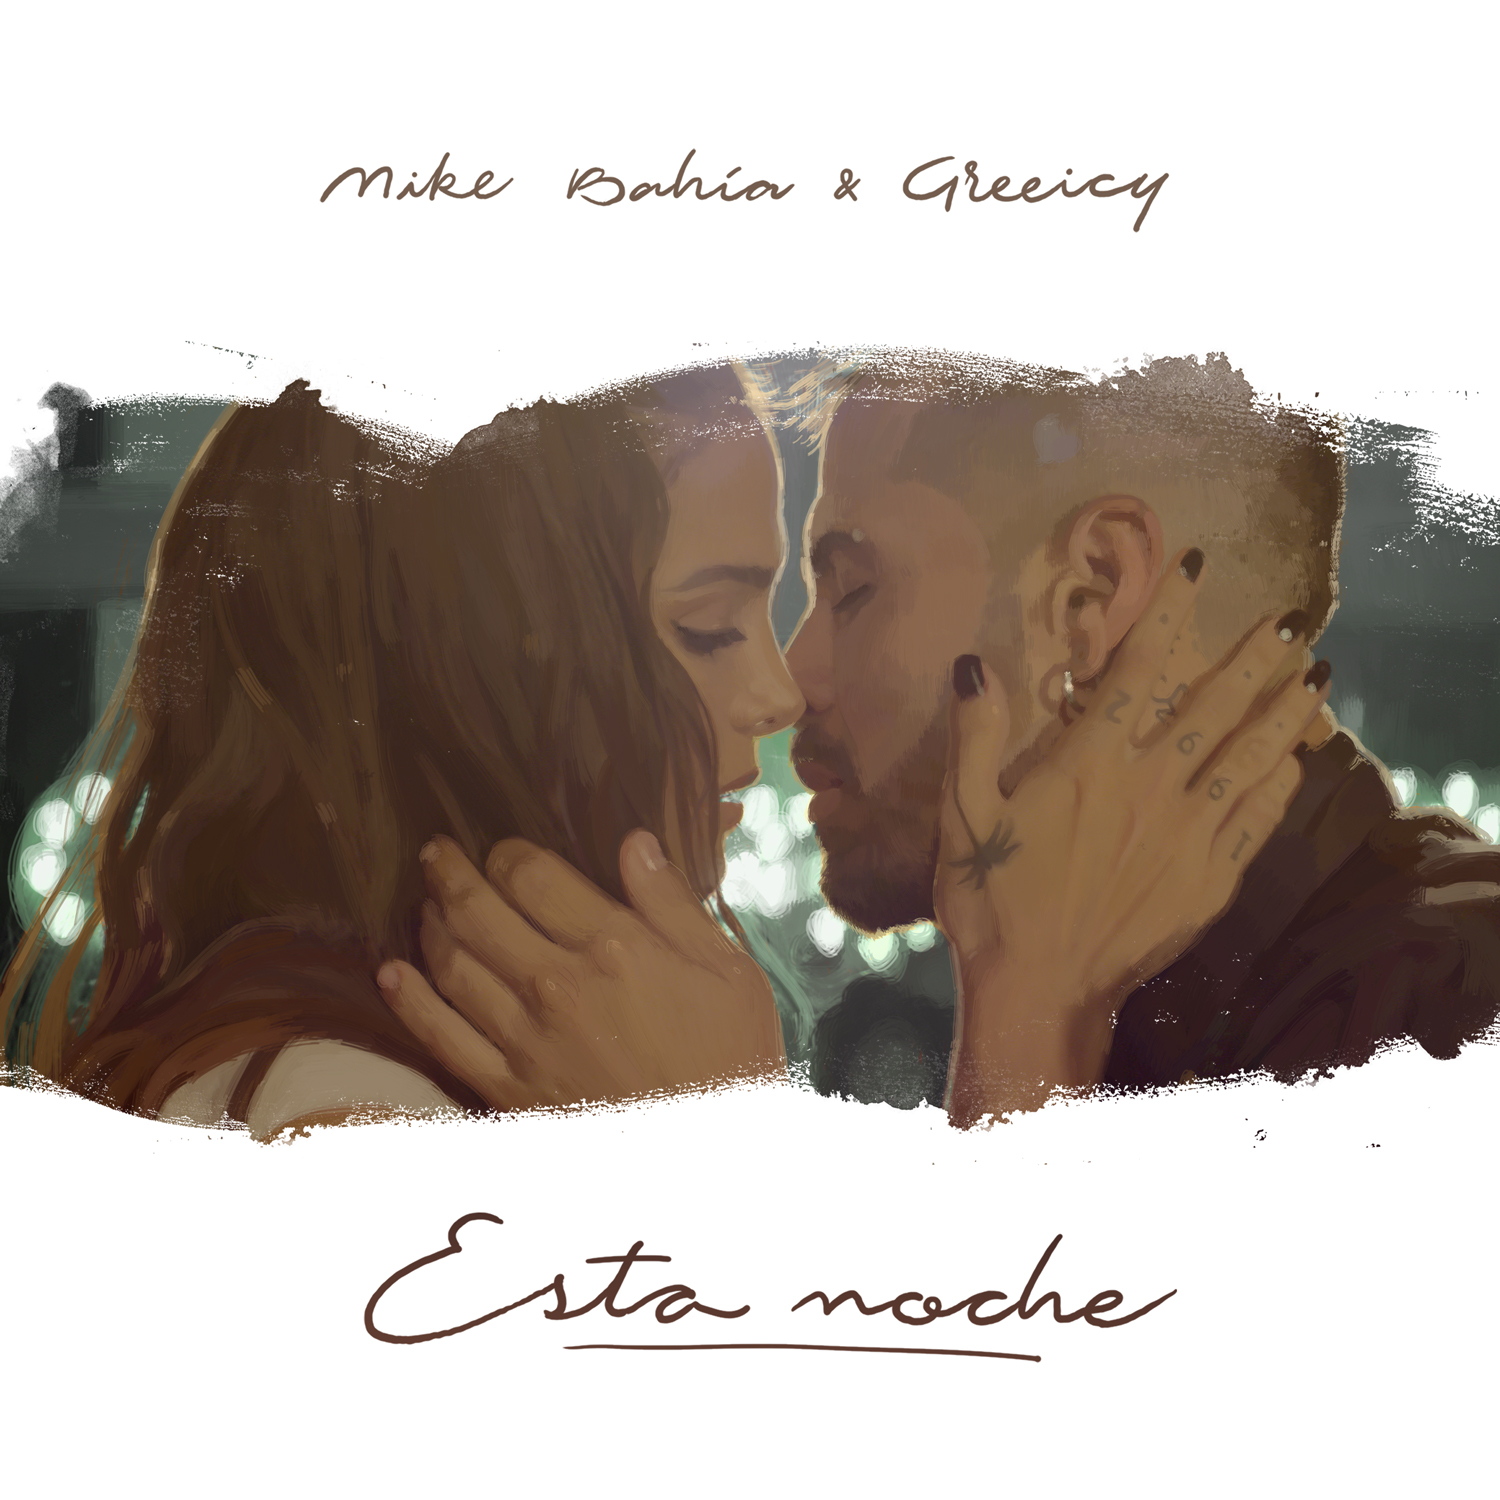 Greeicy y Maike